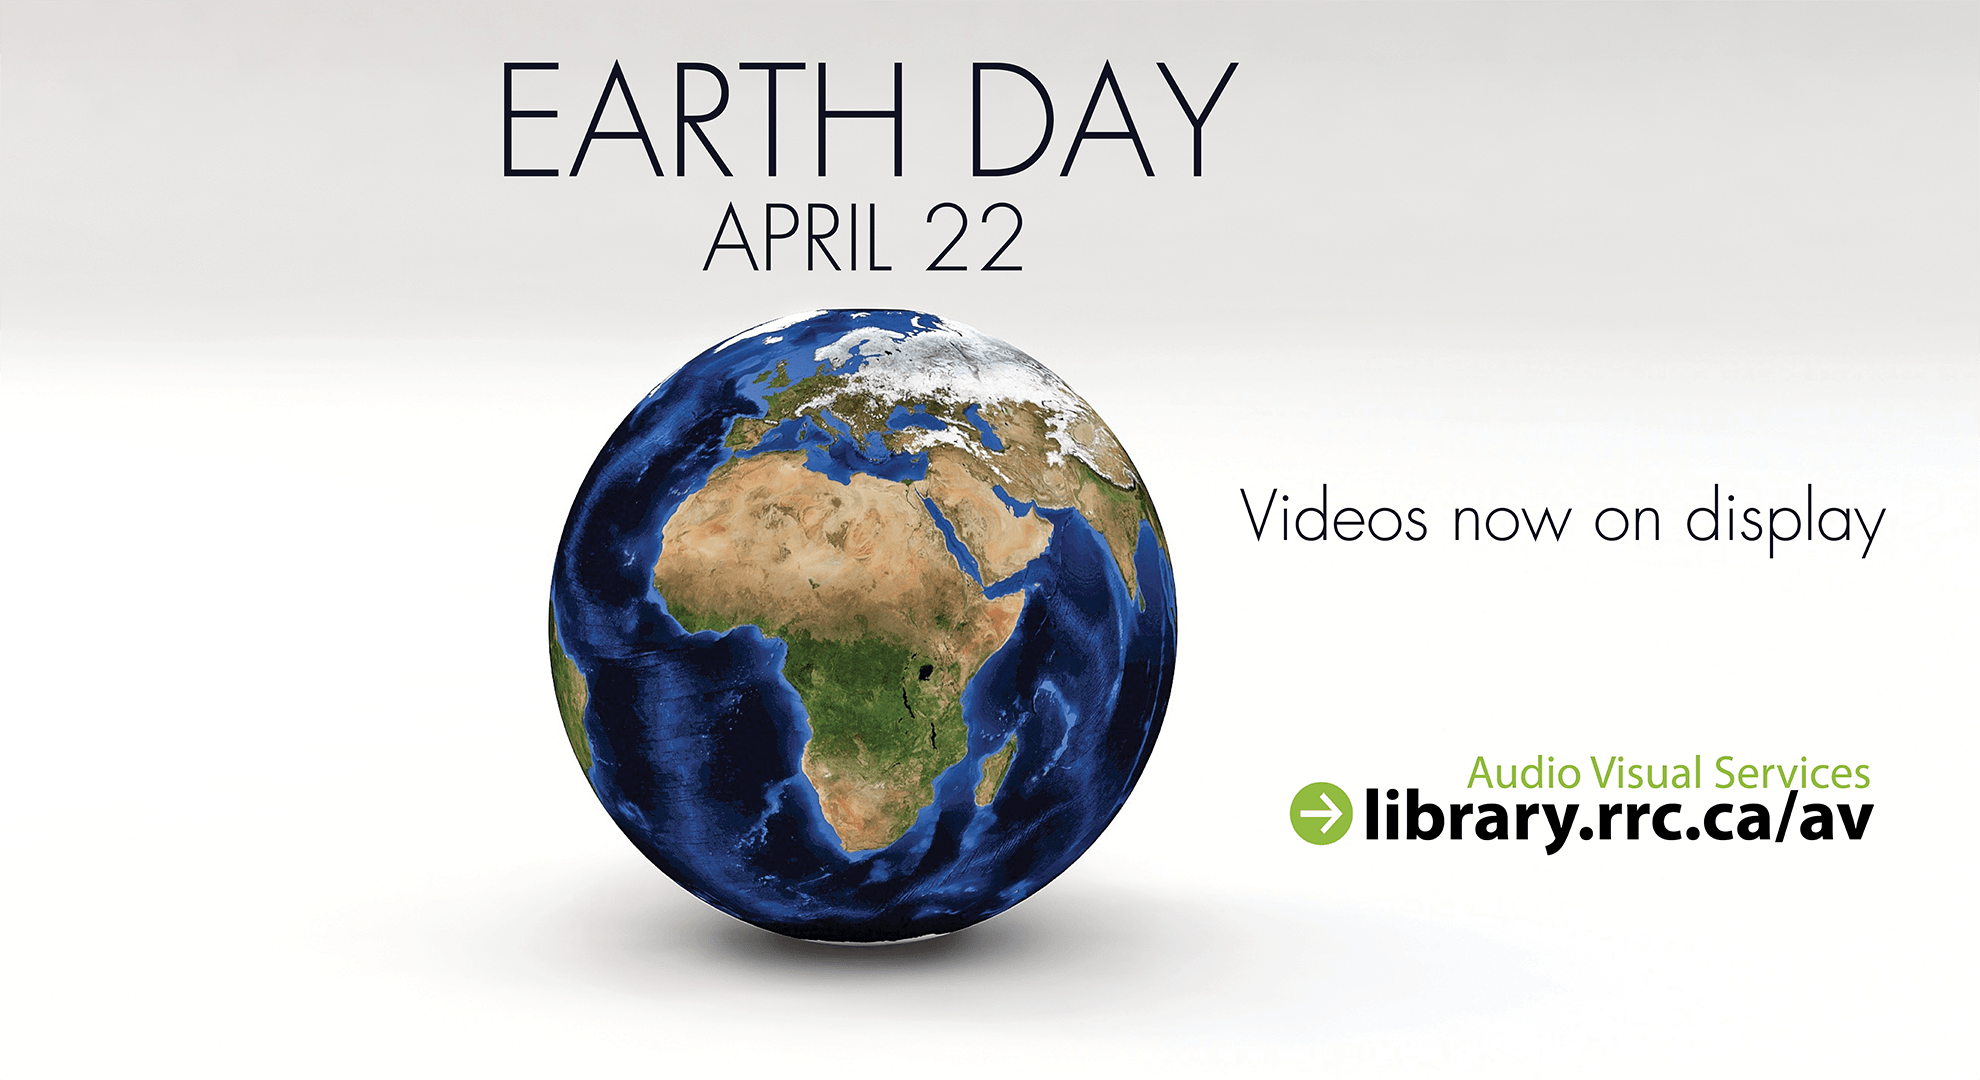 Earth day AV display ad